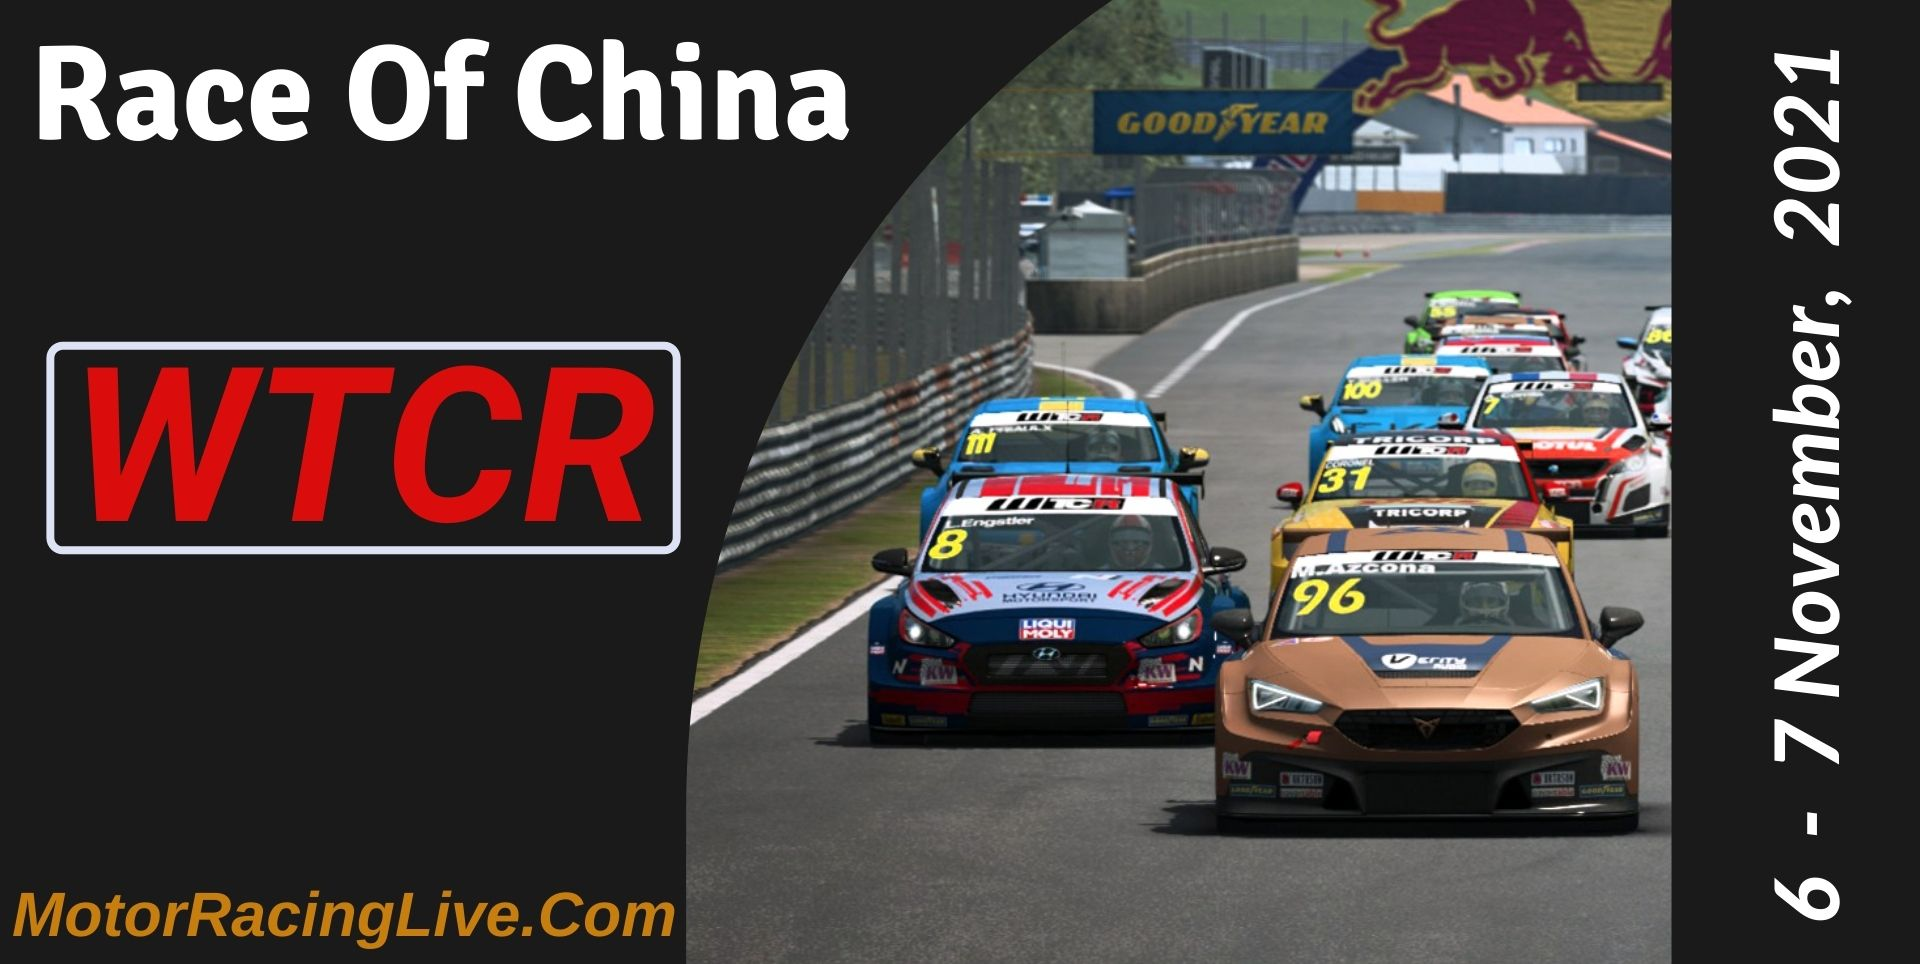 Race Of China Live Stream 2021 | WTCR